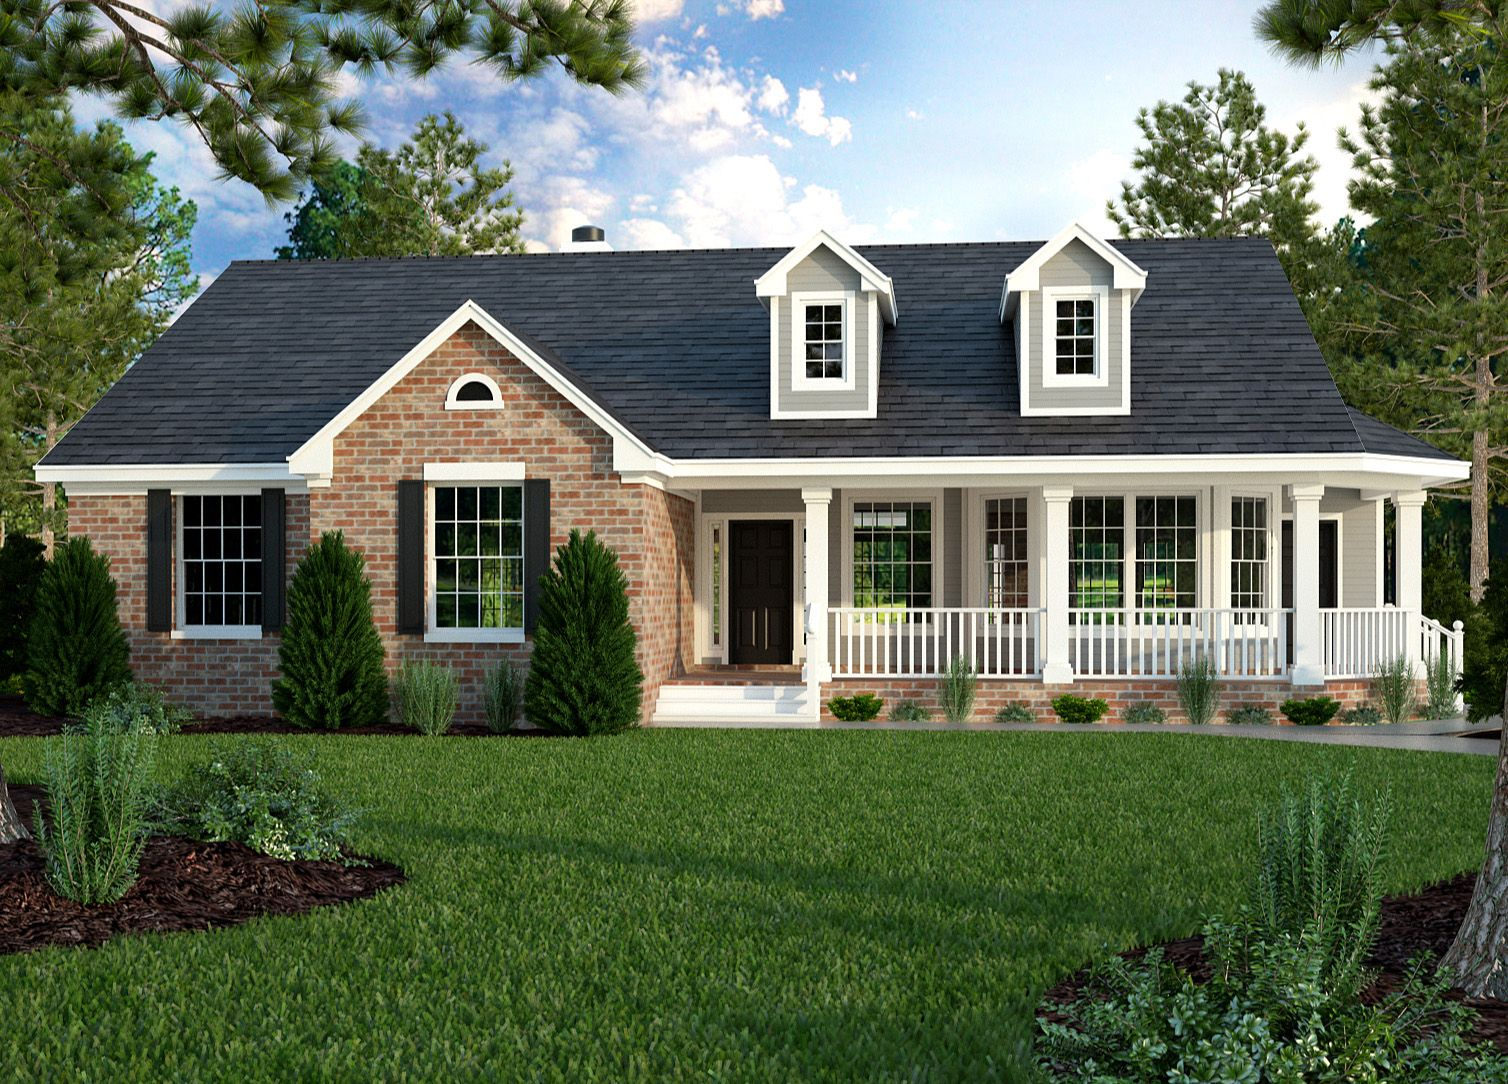 Plan 31093d great little ranch house plan ranch house for Single story brick house plans